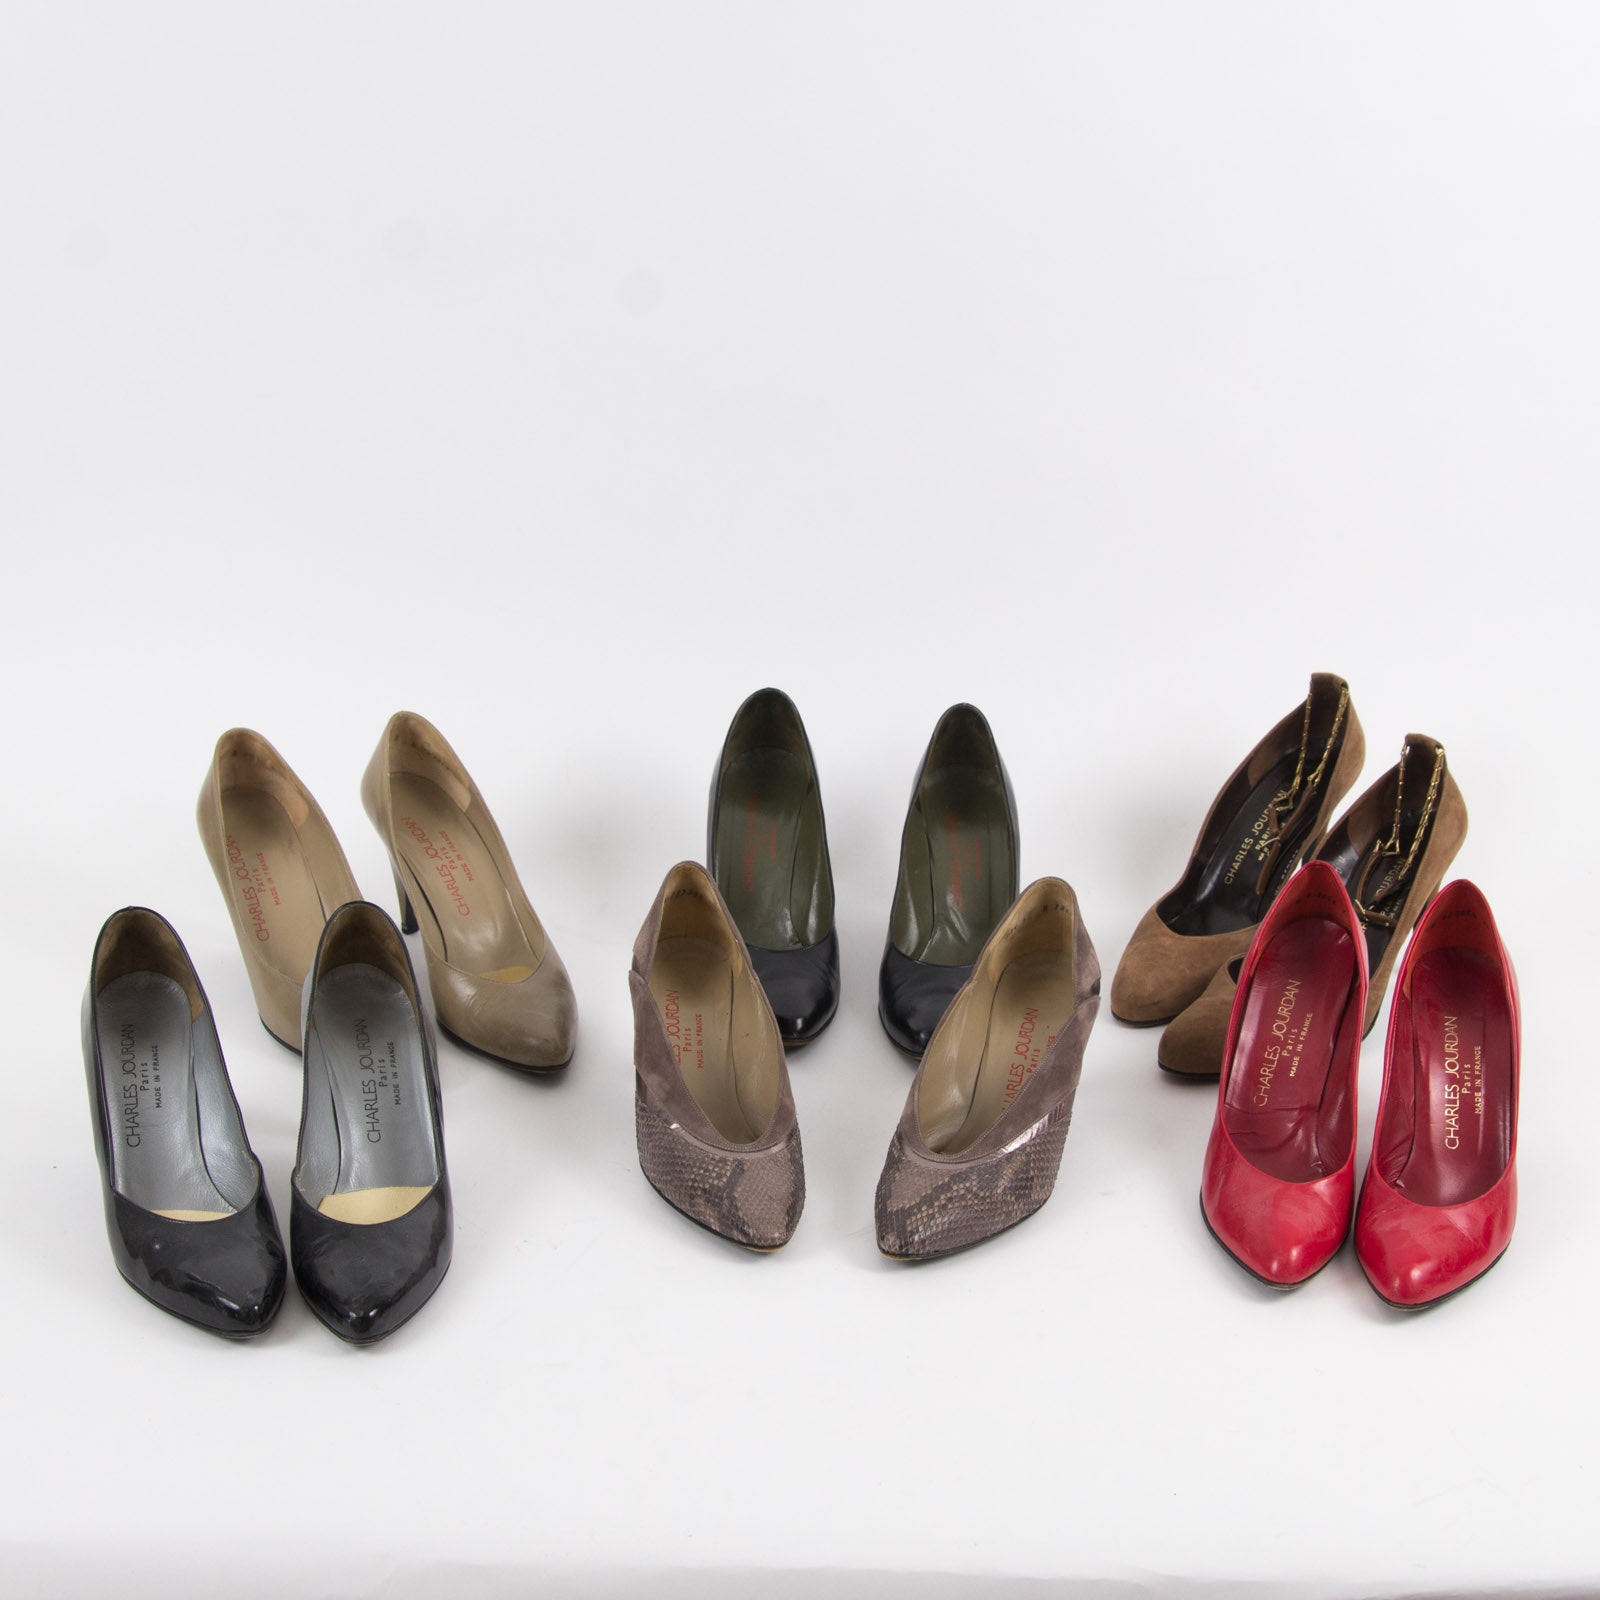 Six Pairs of Charles Jourdan Pumps